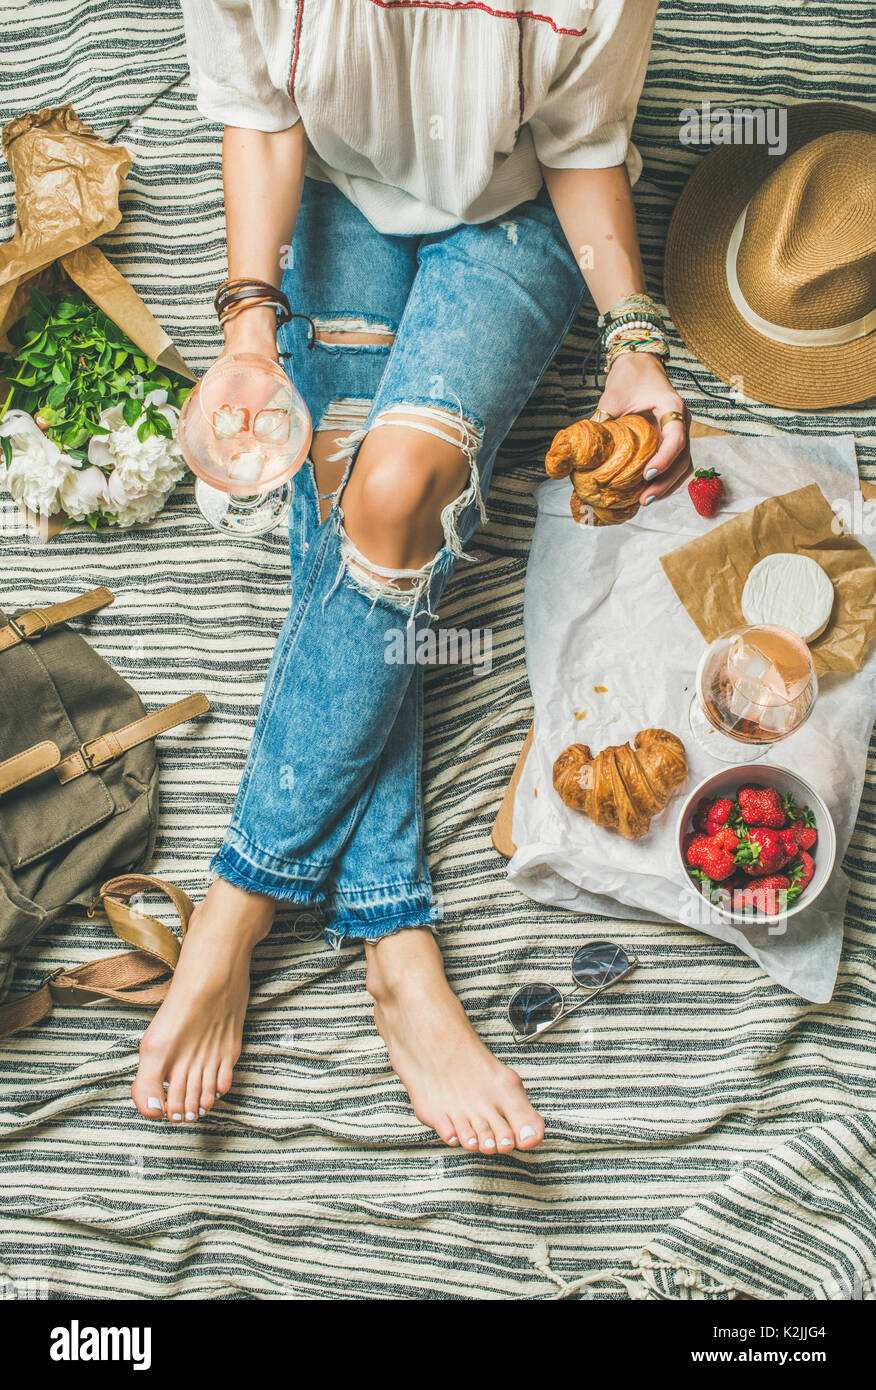 French style romantic picnic setting. Woman in denim pants sits with glass of rose wine, strawberries, croissants, brie cheese, hat, sunglasses, peony - Stock Image